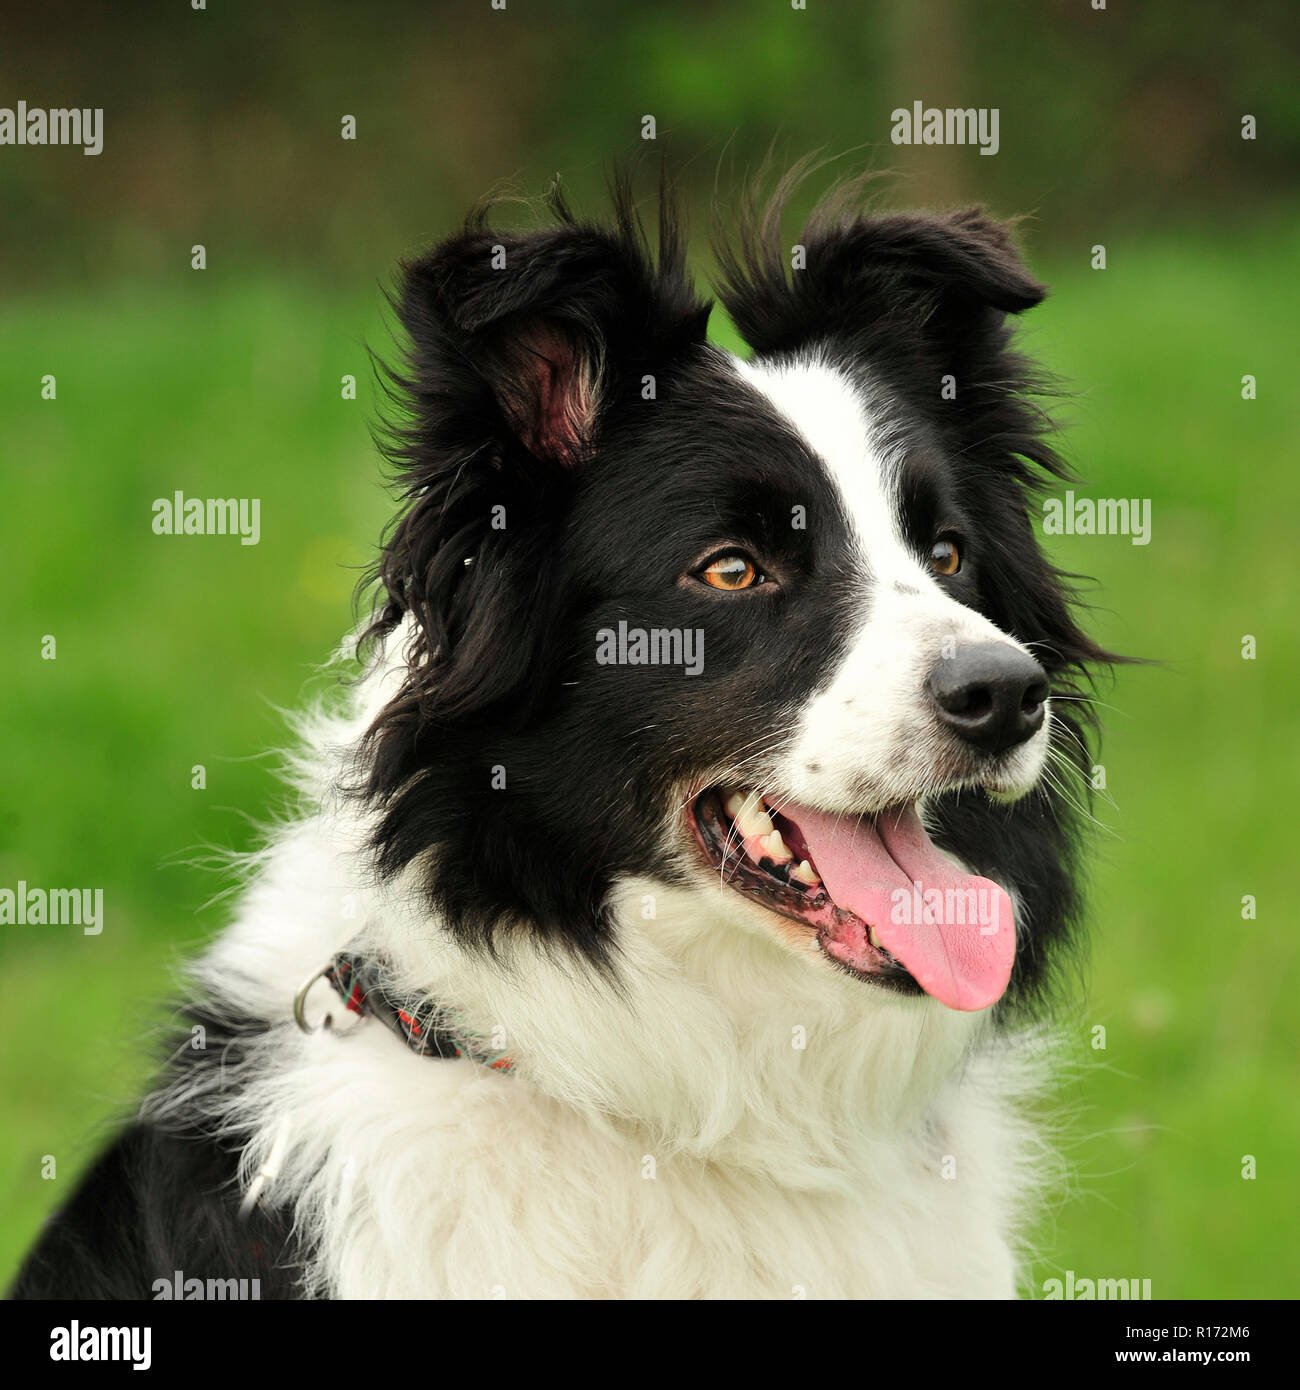 border collie Photo Stock